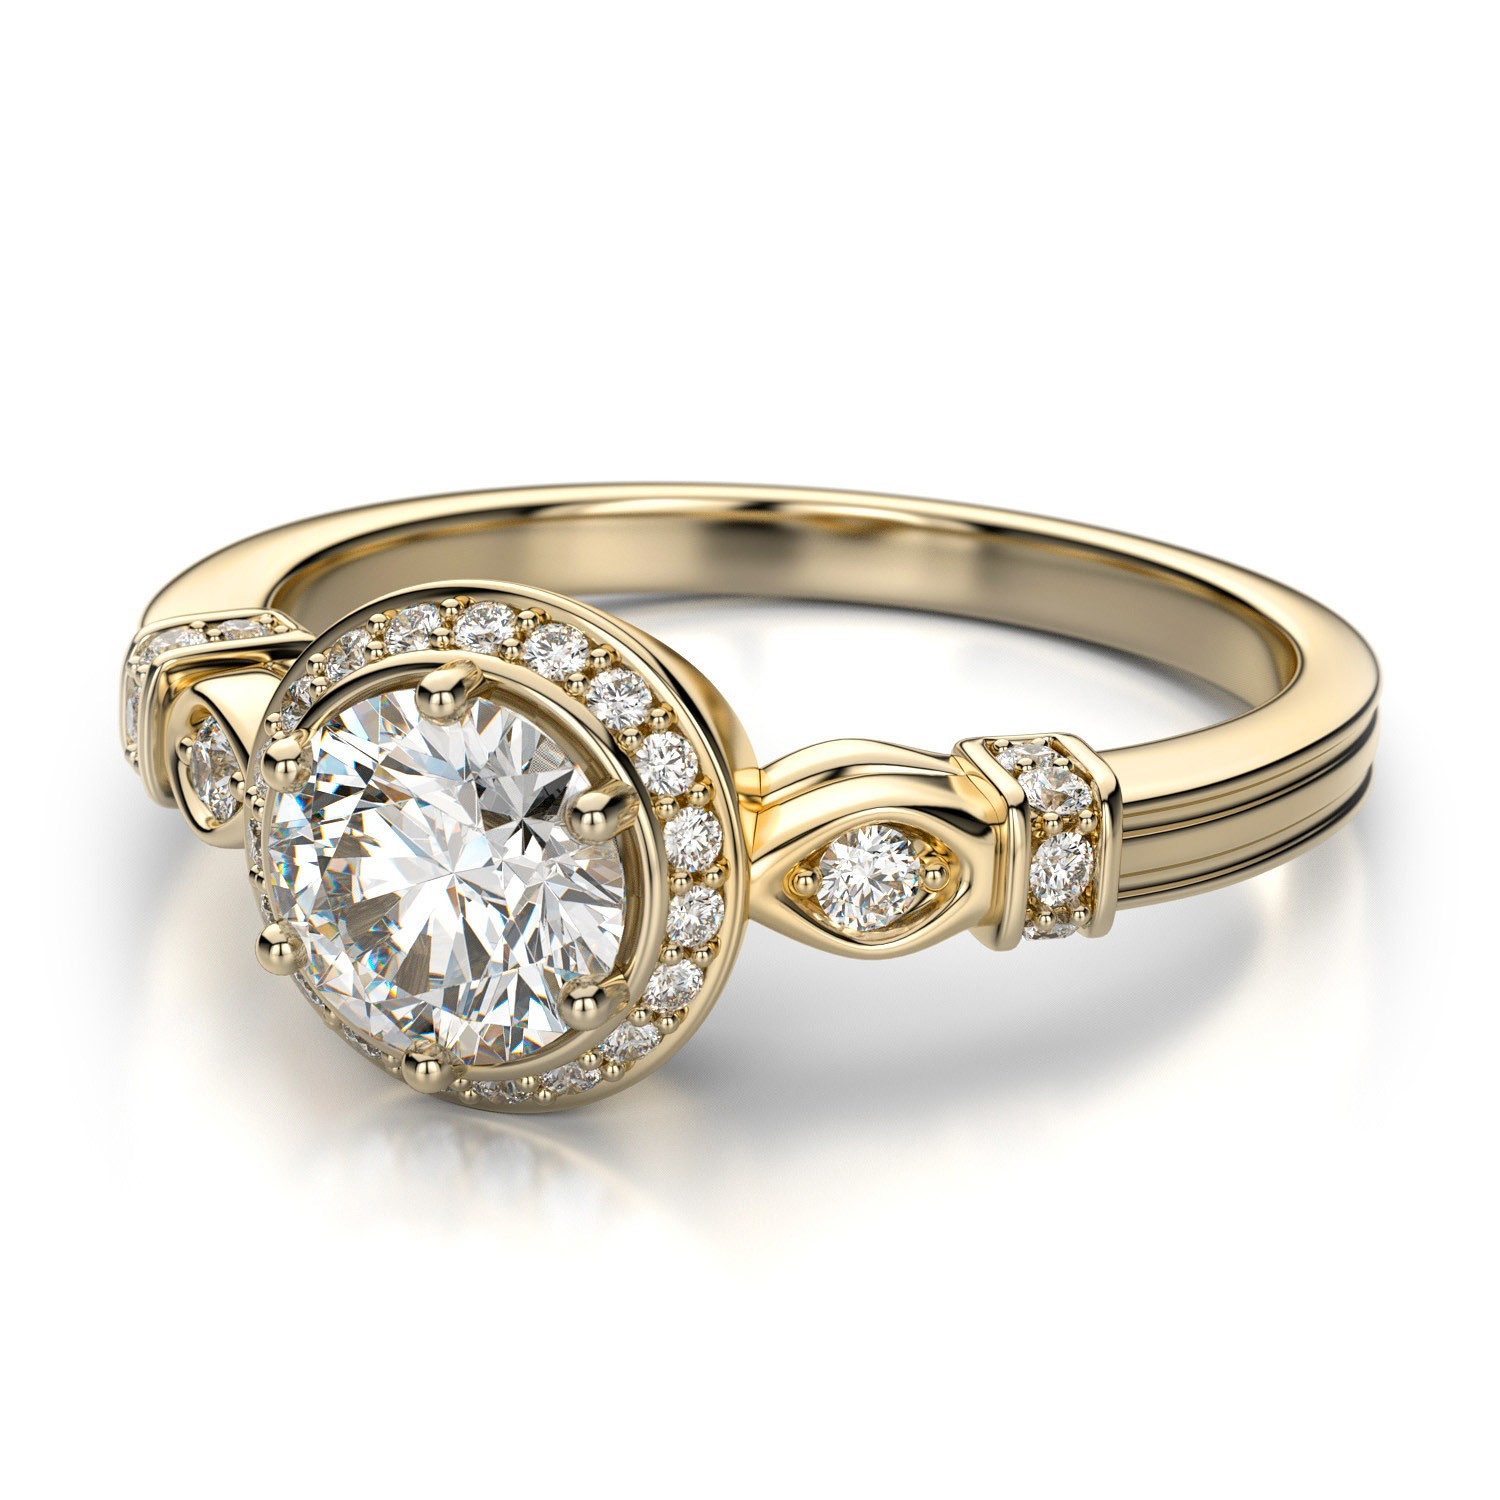 antique wedding rings antique wedding ring sets Antique Inspired Wedding Rings